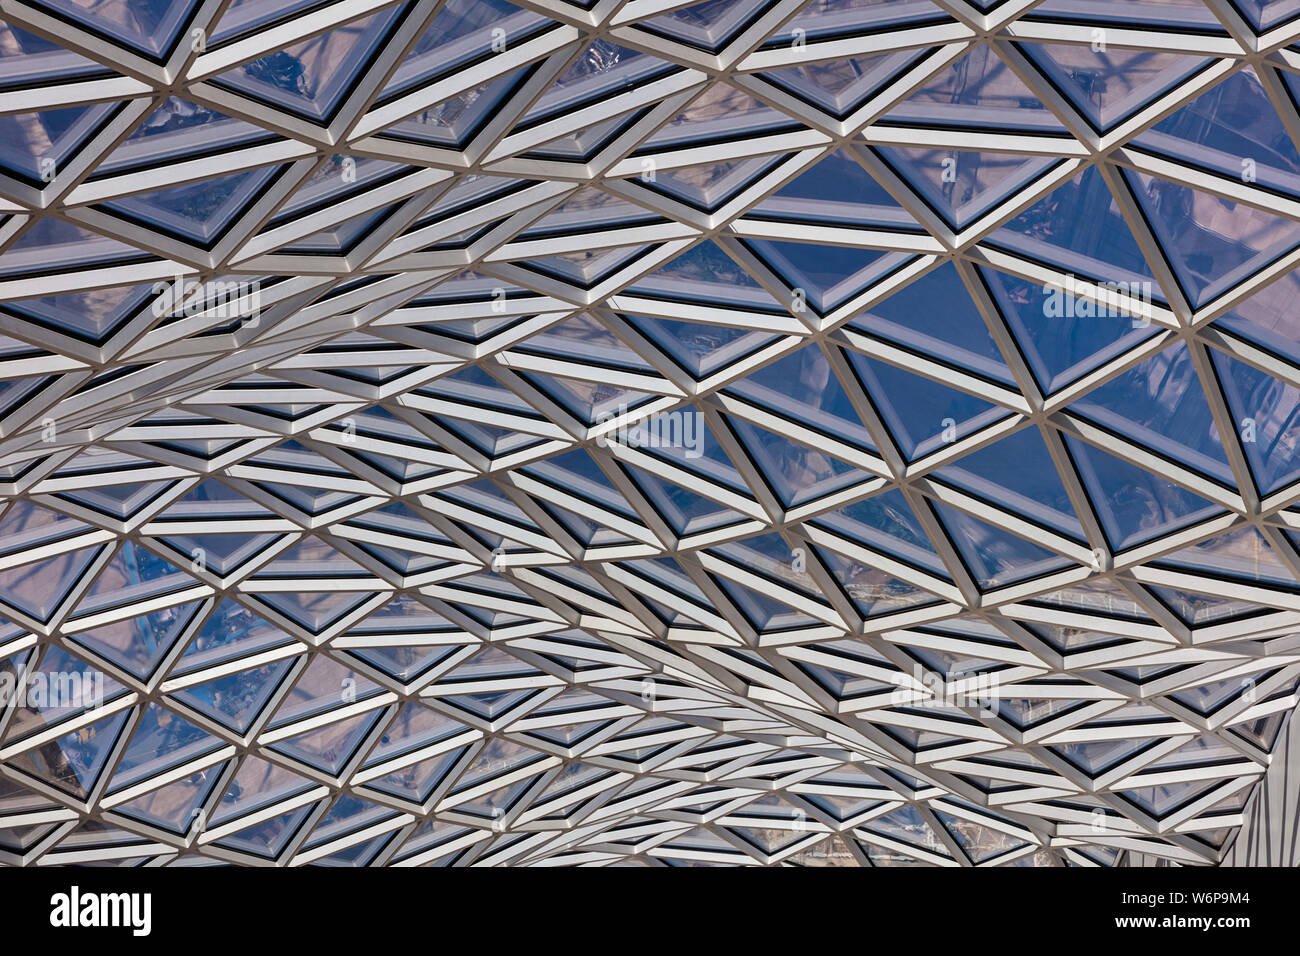 Wavy roof at Westfield Shopping Centre in West London Stock Photo